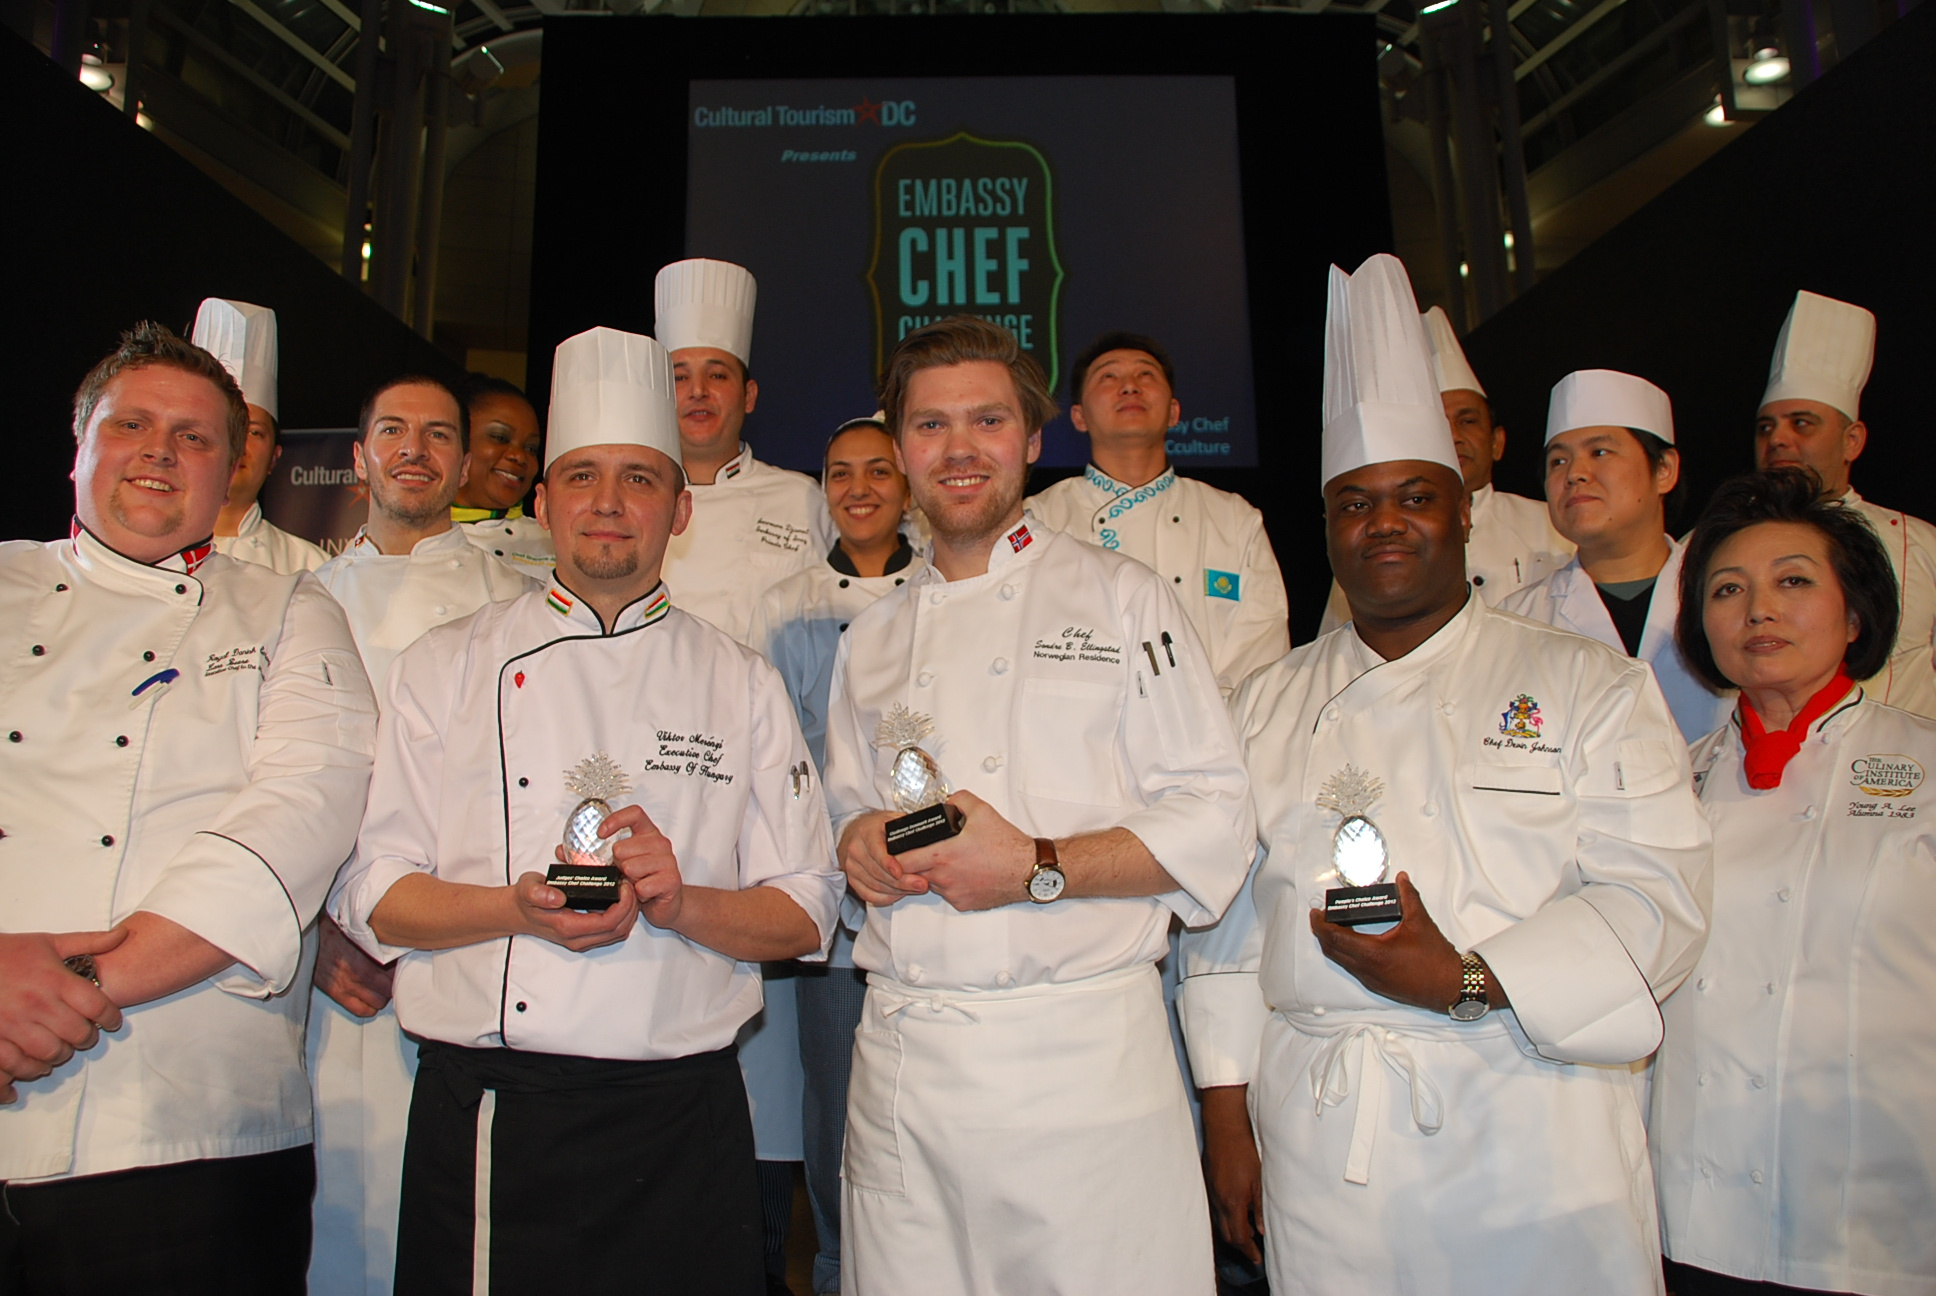 2012 Competing Embassy Chefs at Cultural Tourism DC's Embassy Chef Challenge. Photo by Don Tanguilig.